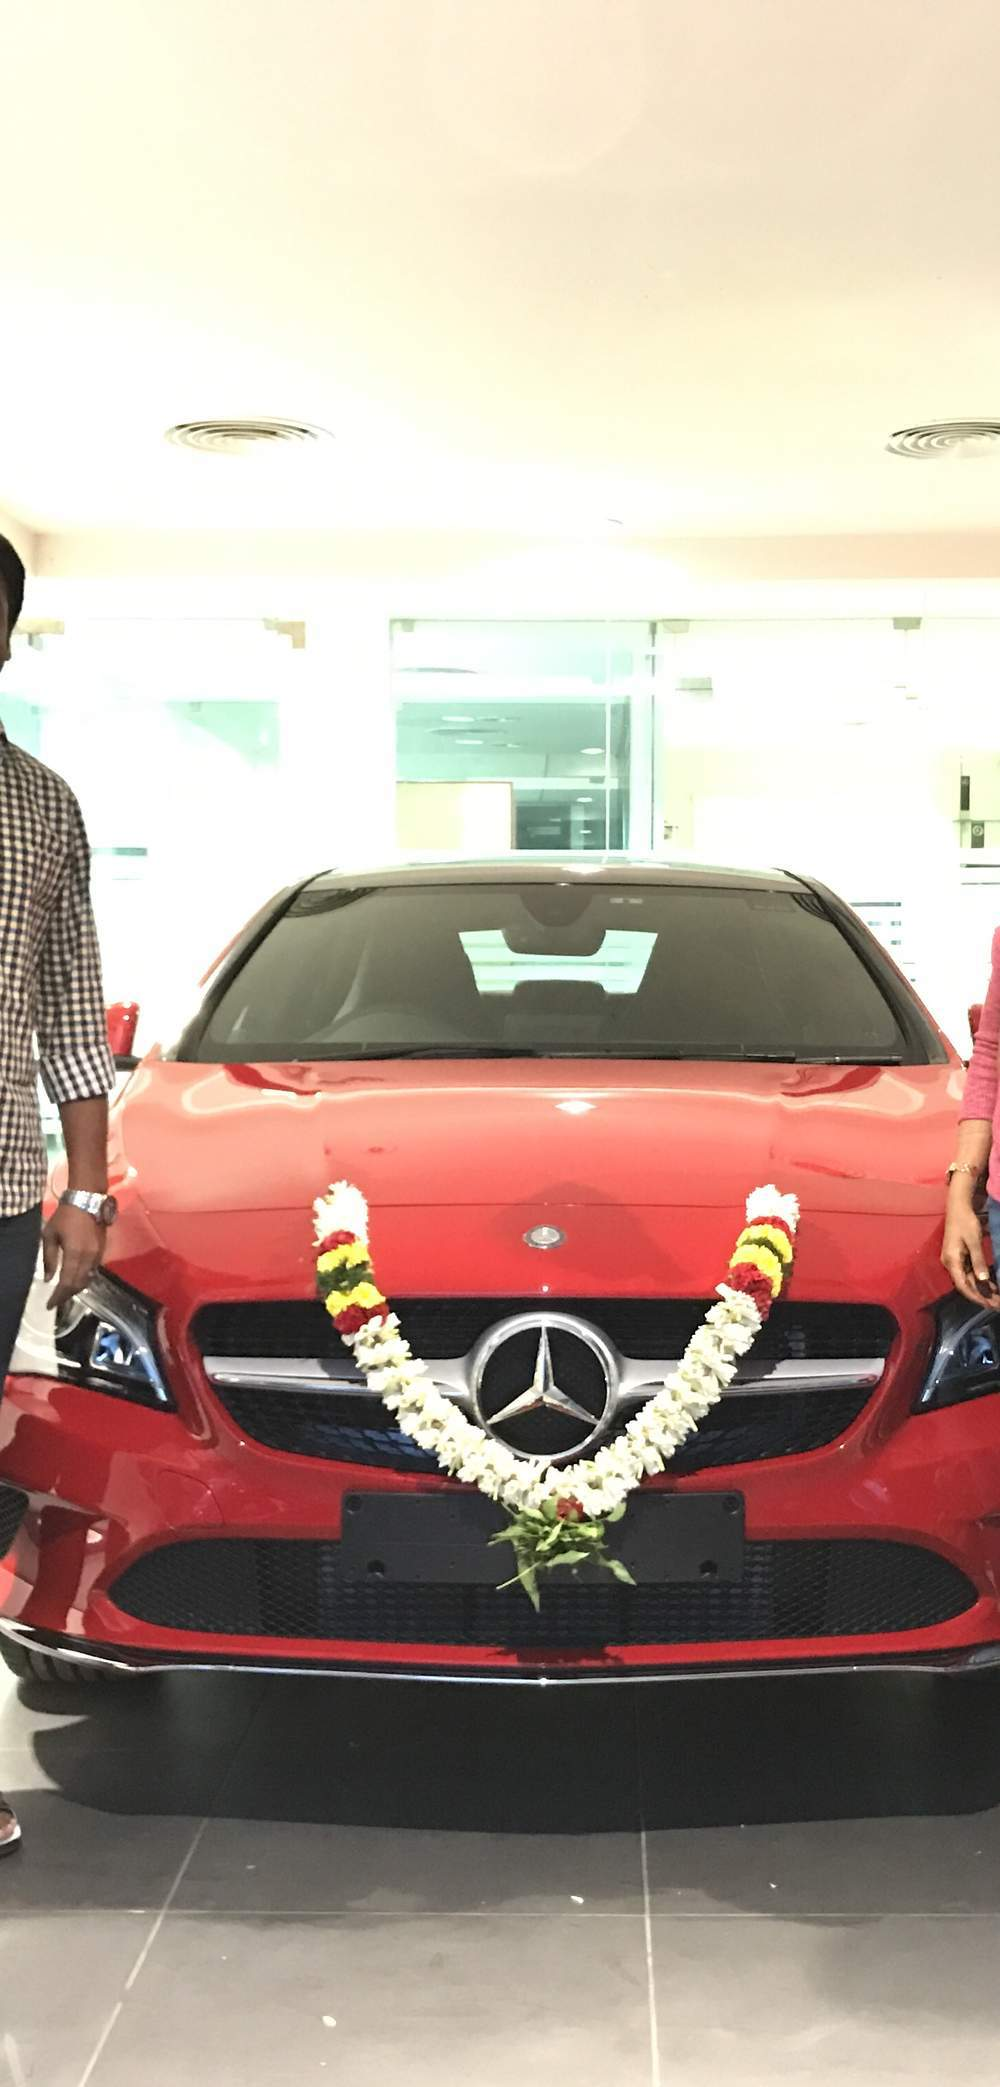 Mercedes Cla 200 Price In India >> Used Mercedes Benz Cla Class CLA 200 CDI Sport in Namakkal 2017 model, India at Best Price, ID 27279